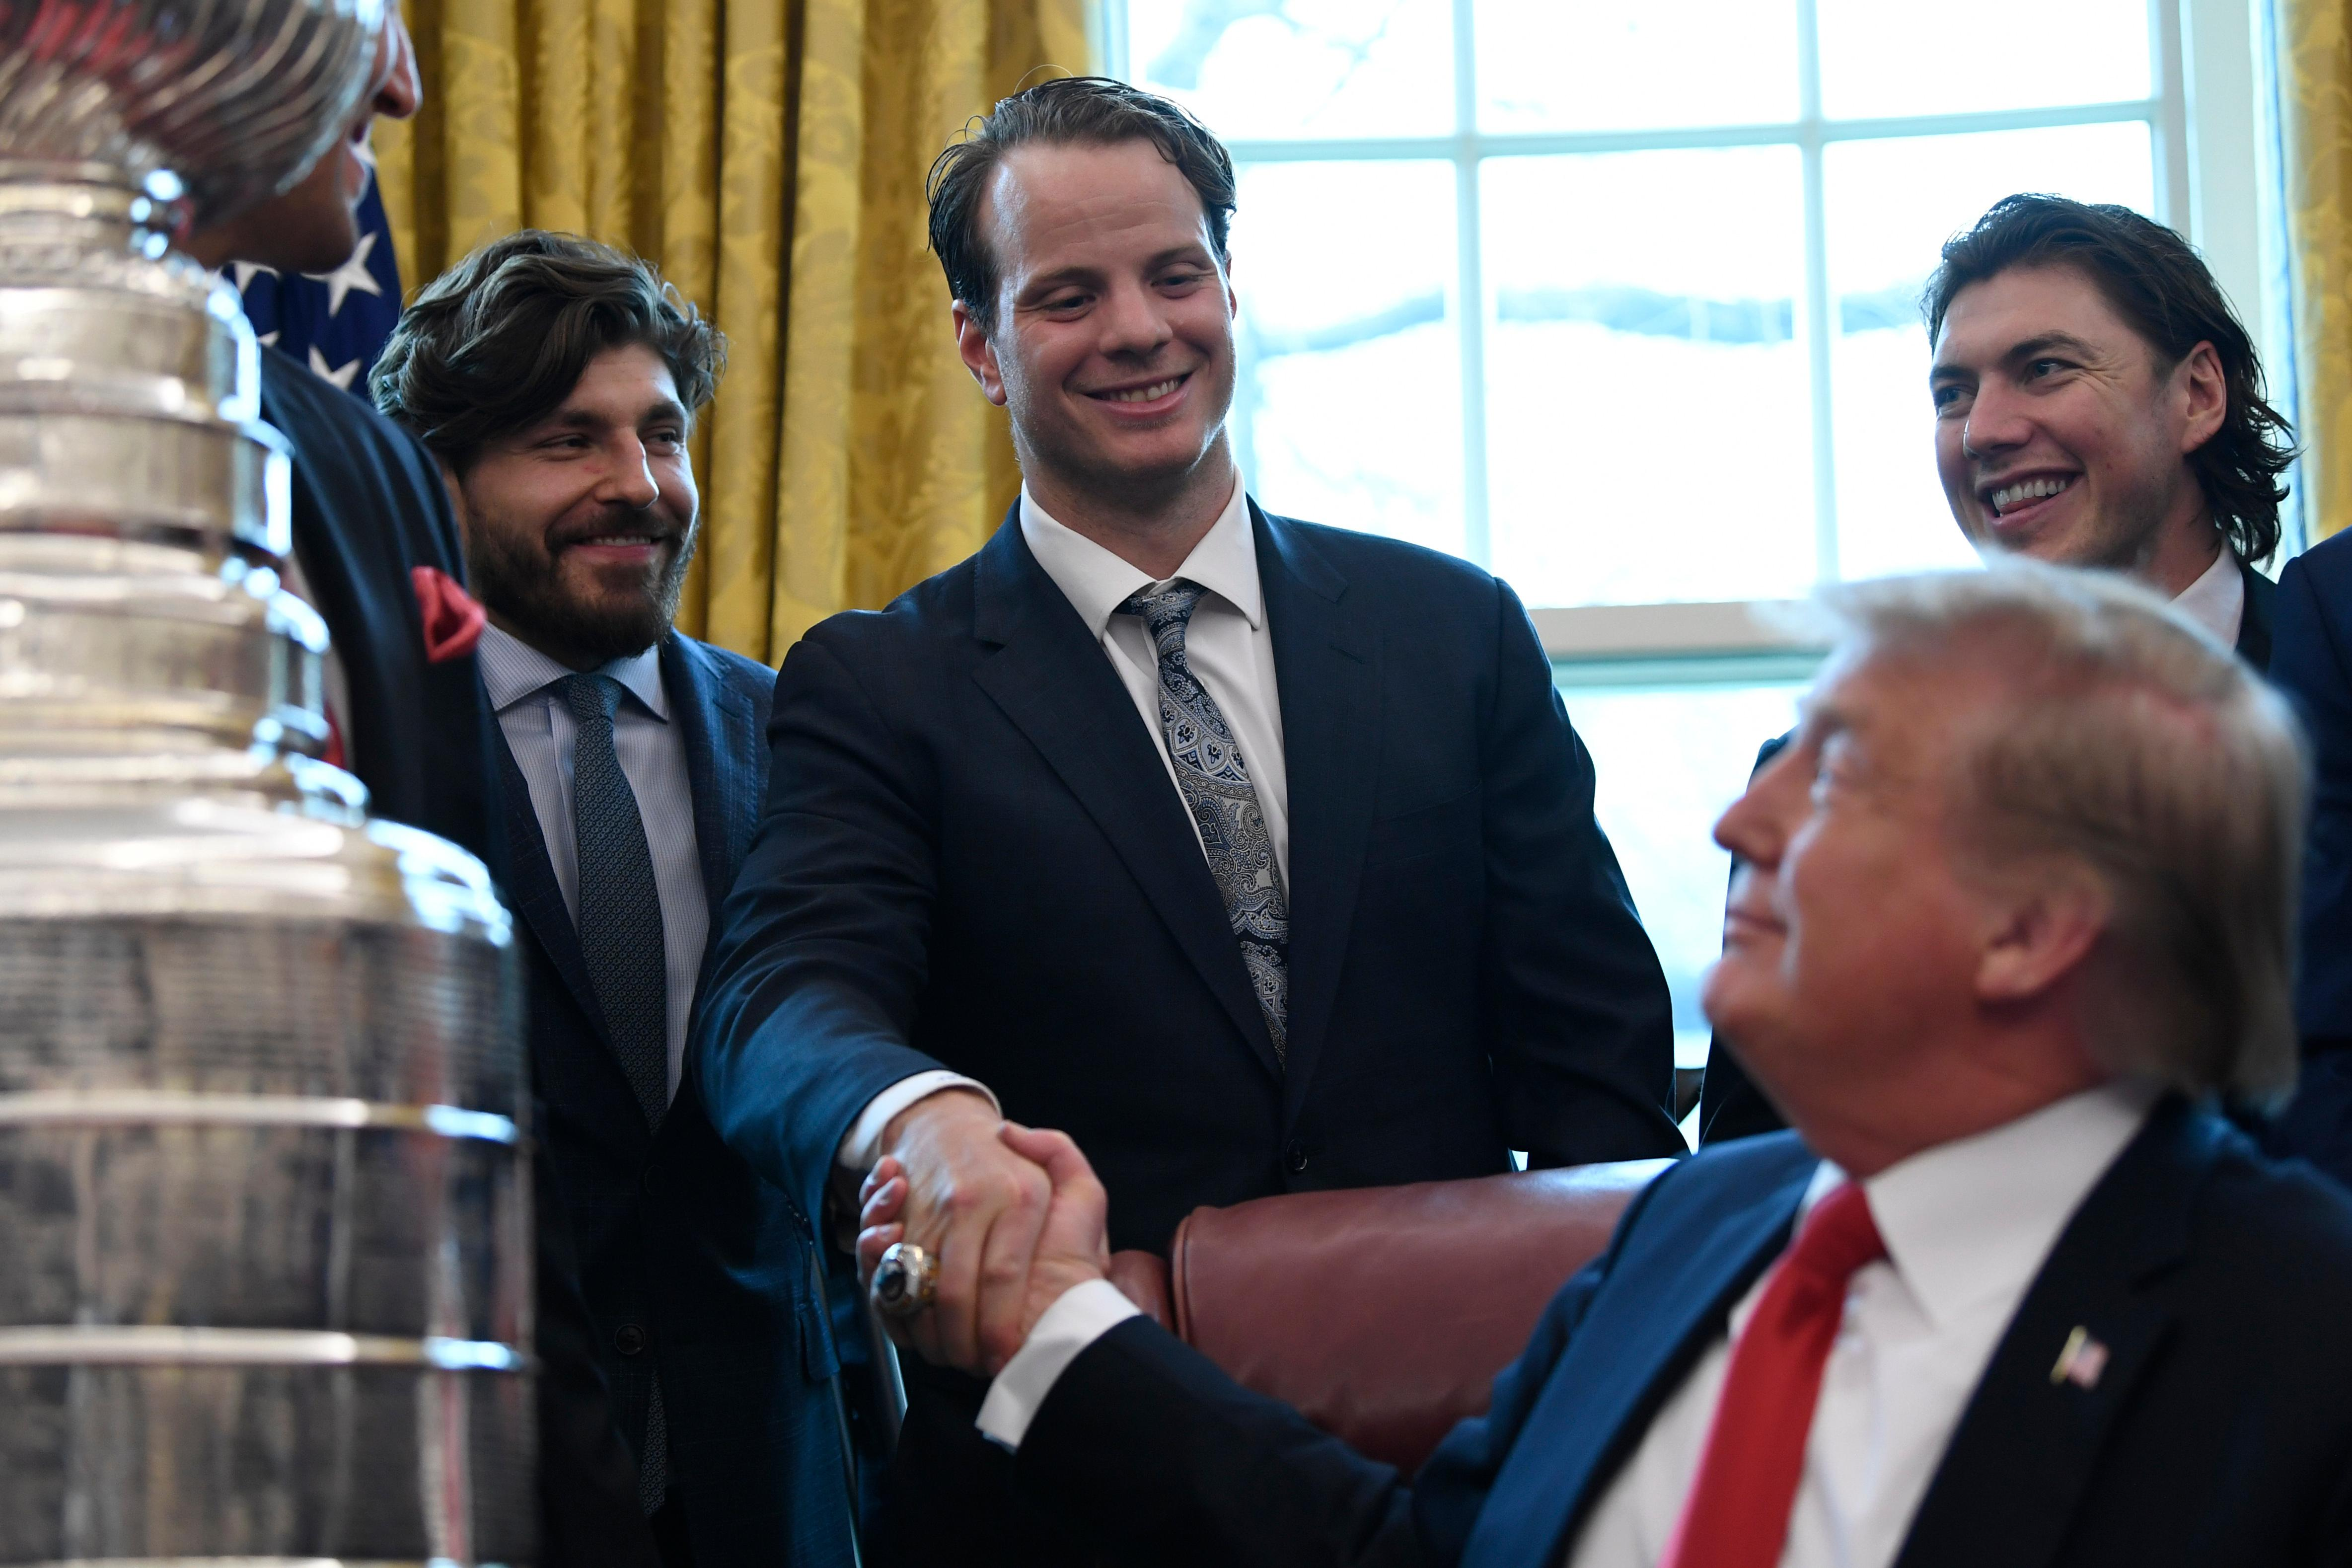 President Donald Trump, front right, shakes hands with John Carlson of the 2018 Stanley Cup Champion Washington Capitals hockey team in the Oval Office of the White House in Washington, Monday, March 25, 2019. Teammate T.J. Oshie watches at right. (AP Photo/Susan Walsh)